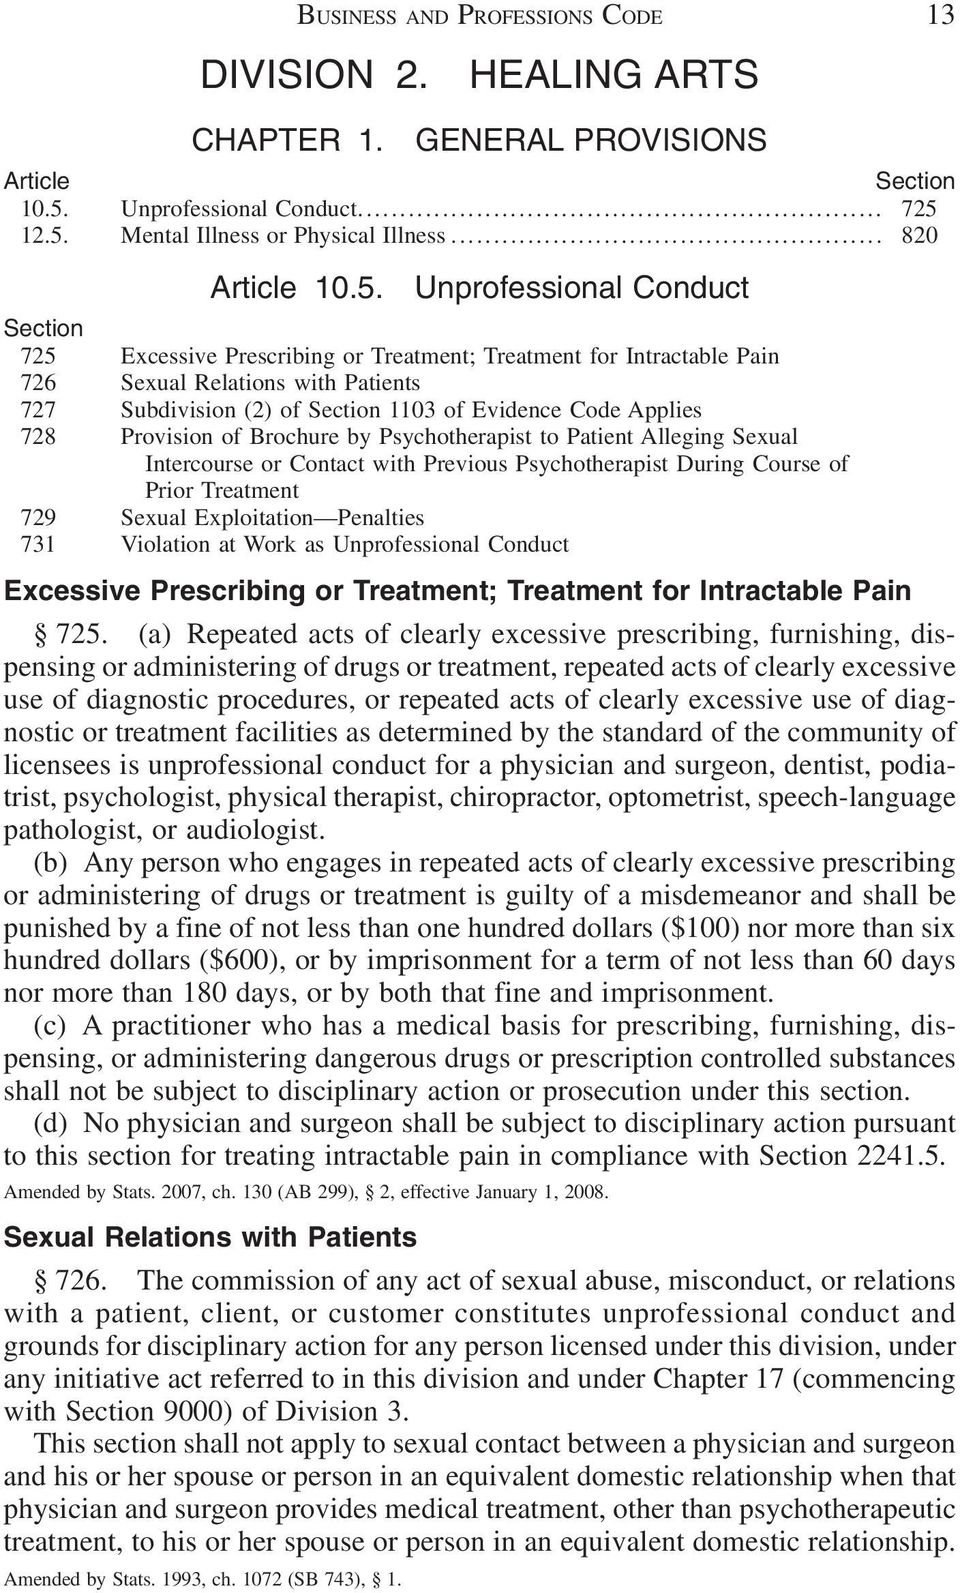 Applies 728 Provision of Brochure by Psychotherapist to Patient Alleging Sexual Intercourse or Contact with Previous Psychotherapist During Course of Prior Treatment 729 Sexual Exploitation Penalties